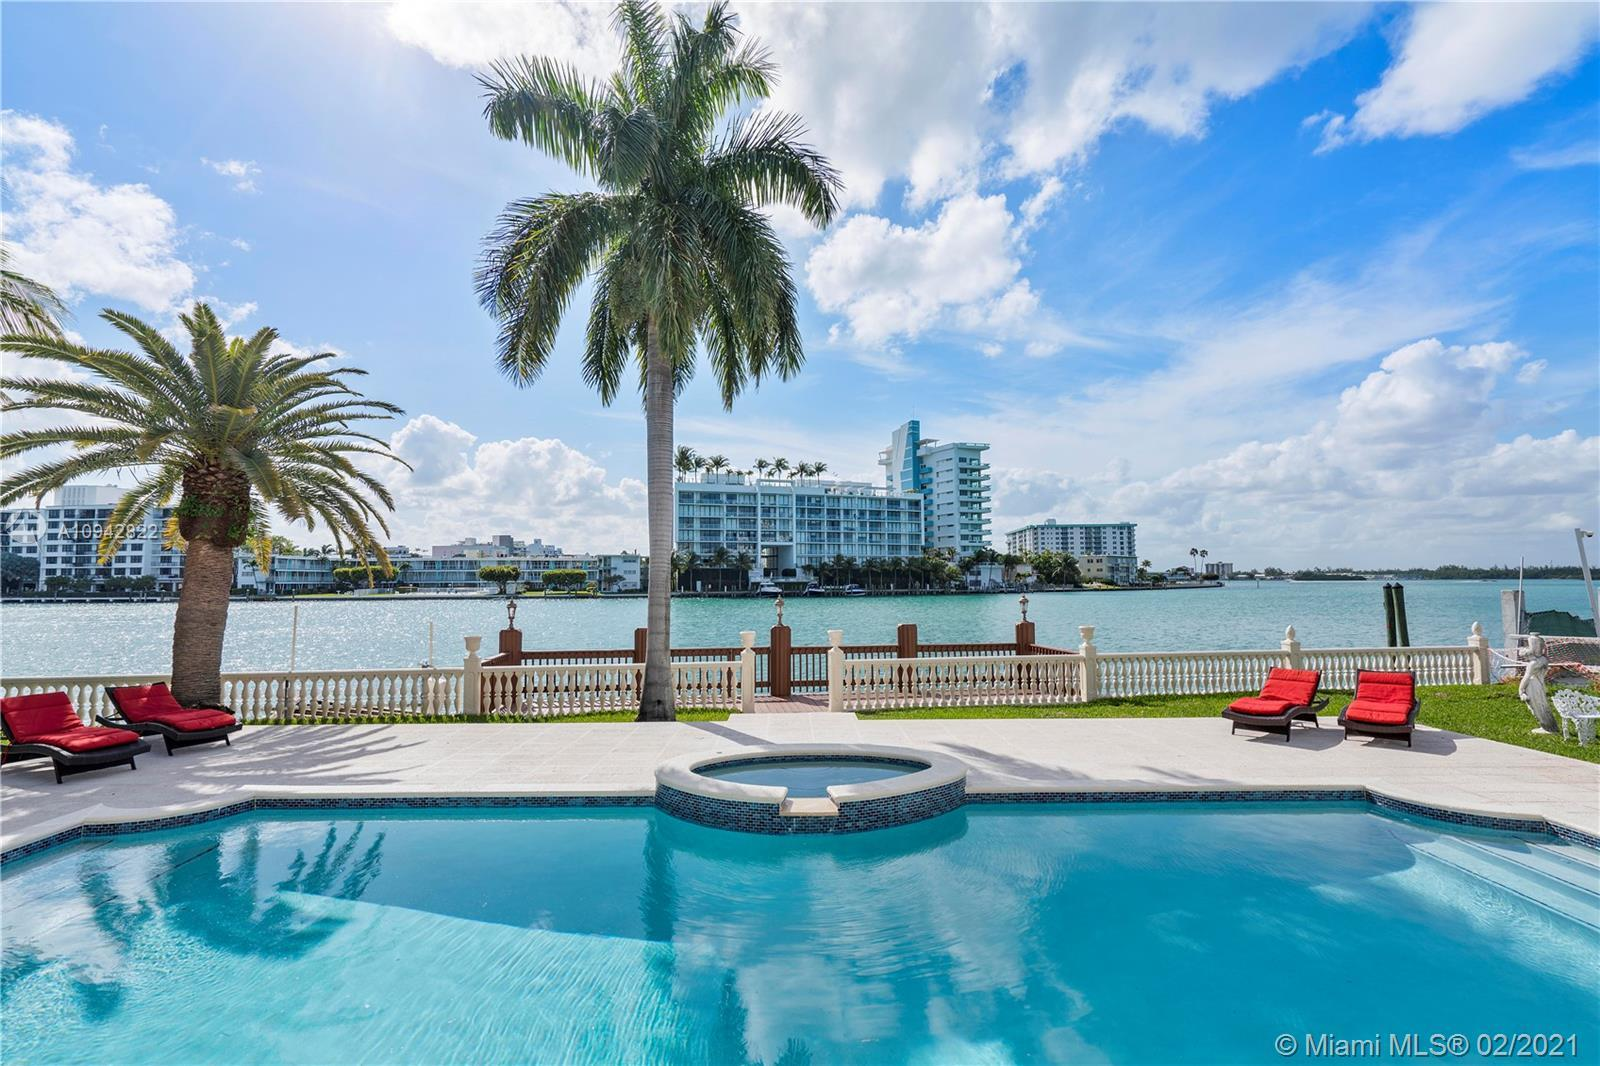 BAL HARBOUR WATERFRONT LUXURIOUS HOME IN GATED COMMUNITY. 7,277 SQFT HOME ON 20,900 SQ FT LOT!!!